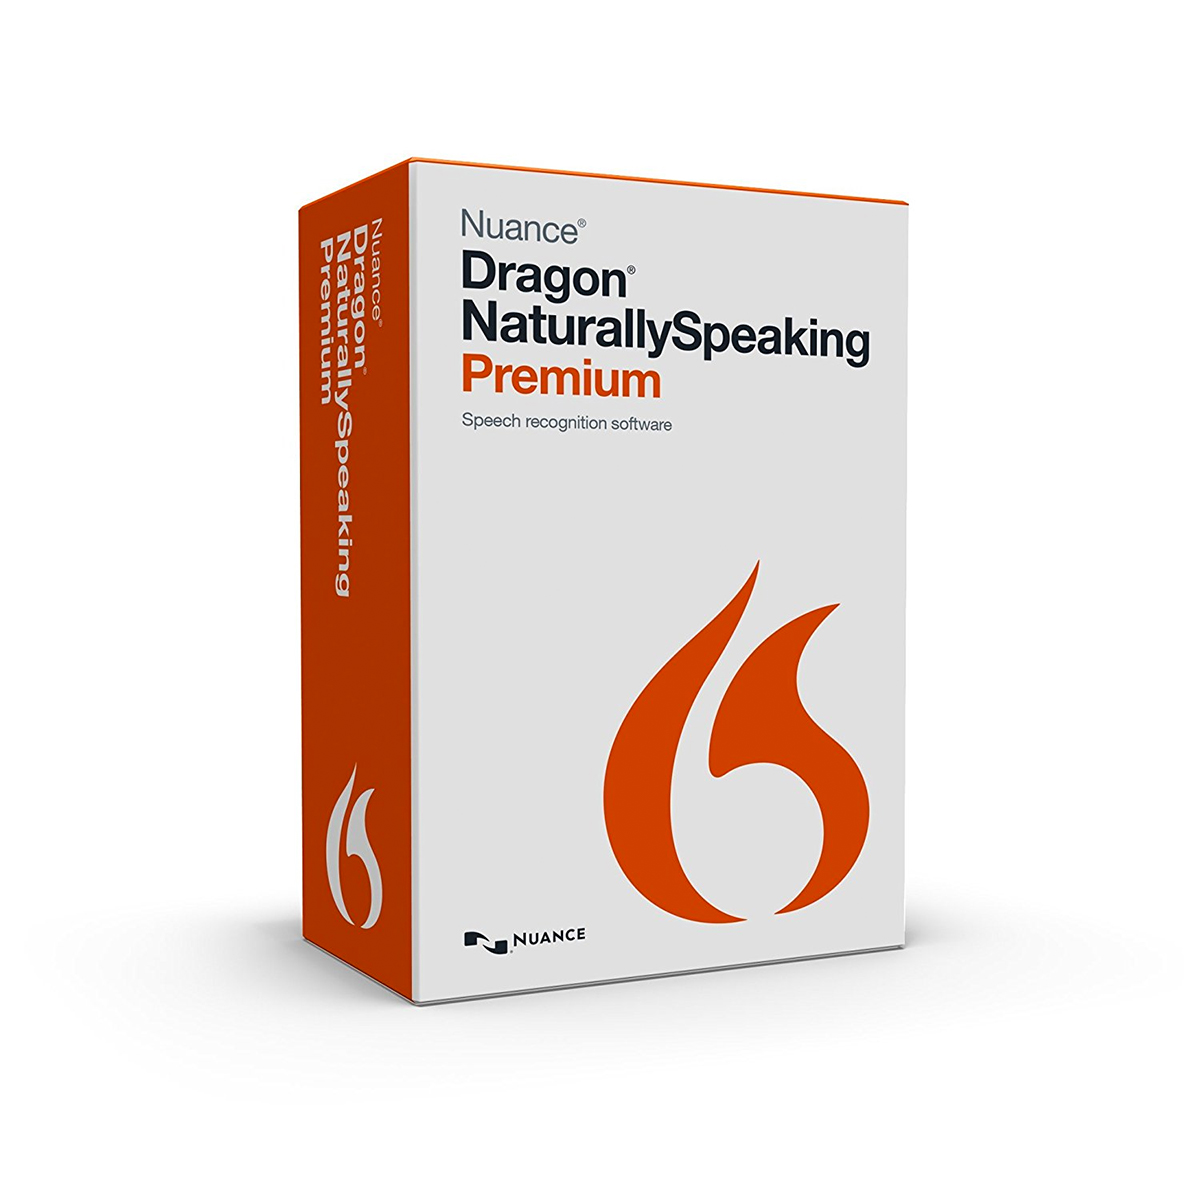 Nuance Dragon NaturallySpeaking Premium 13.0 International English Brown Bag